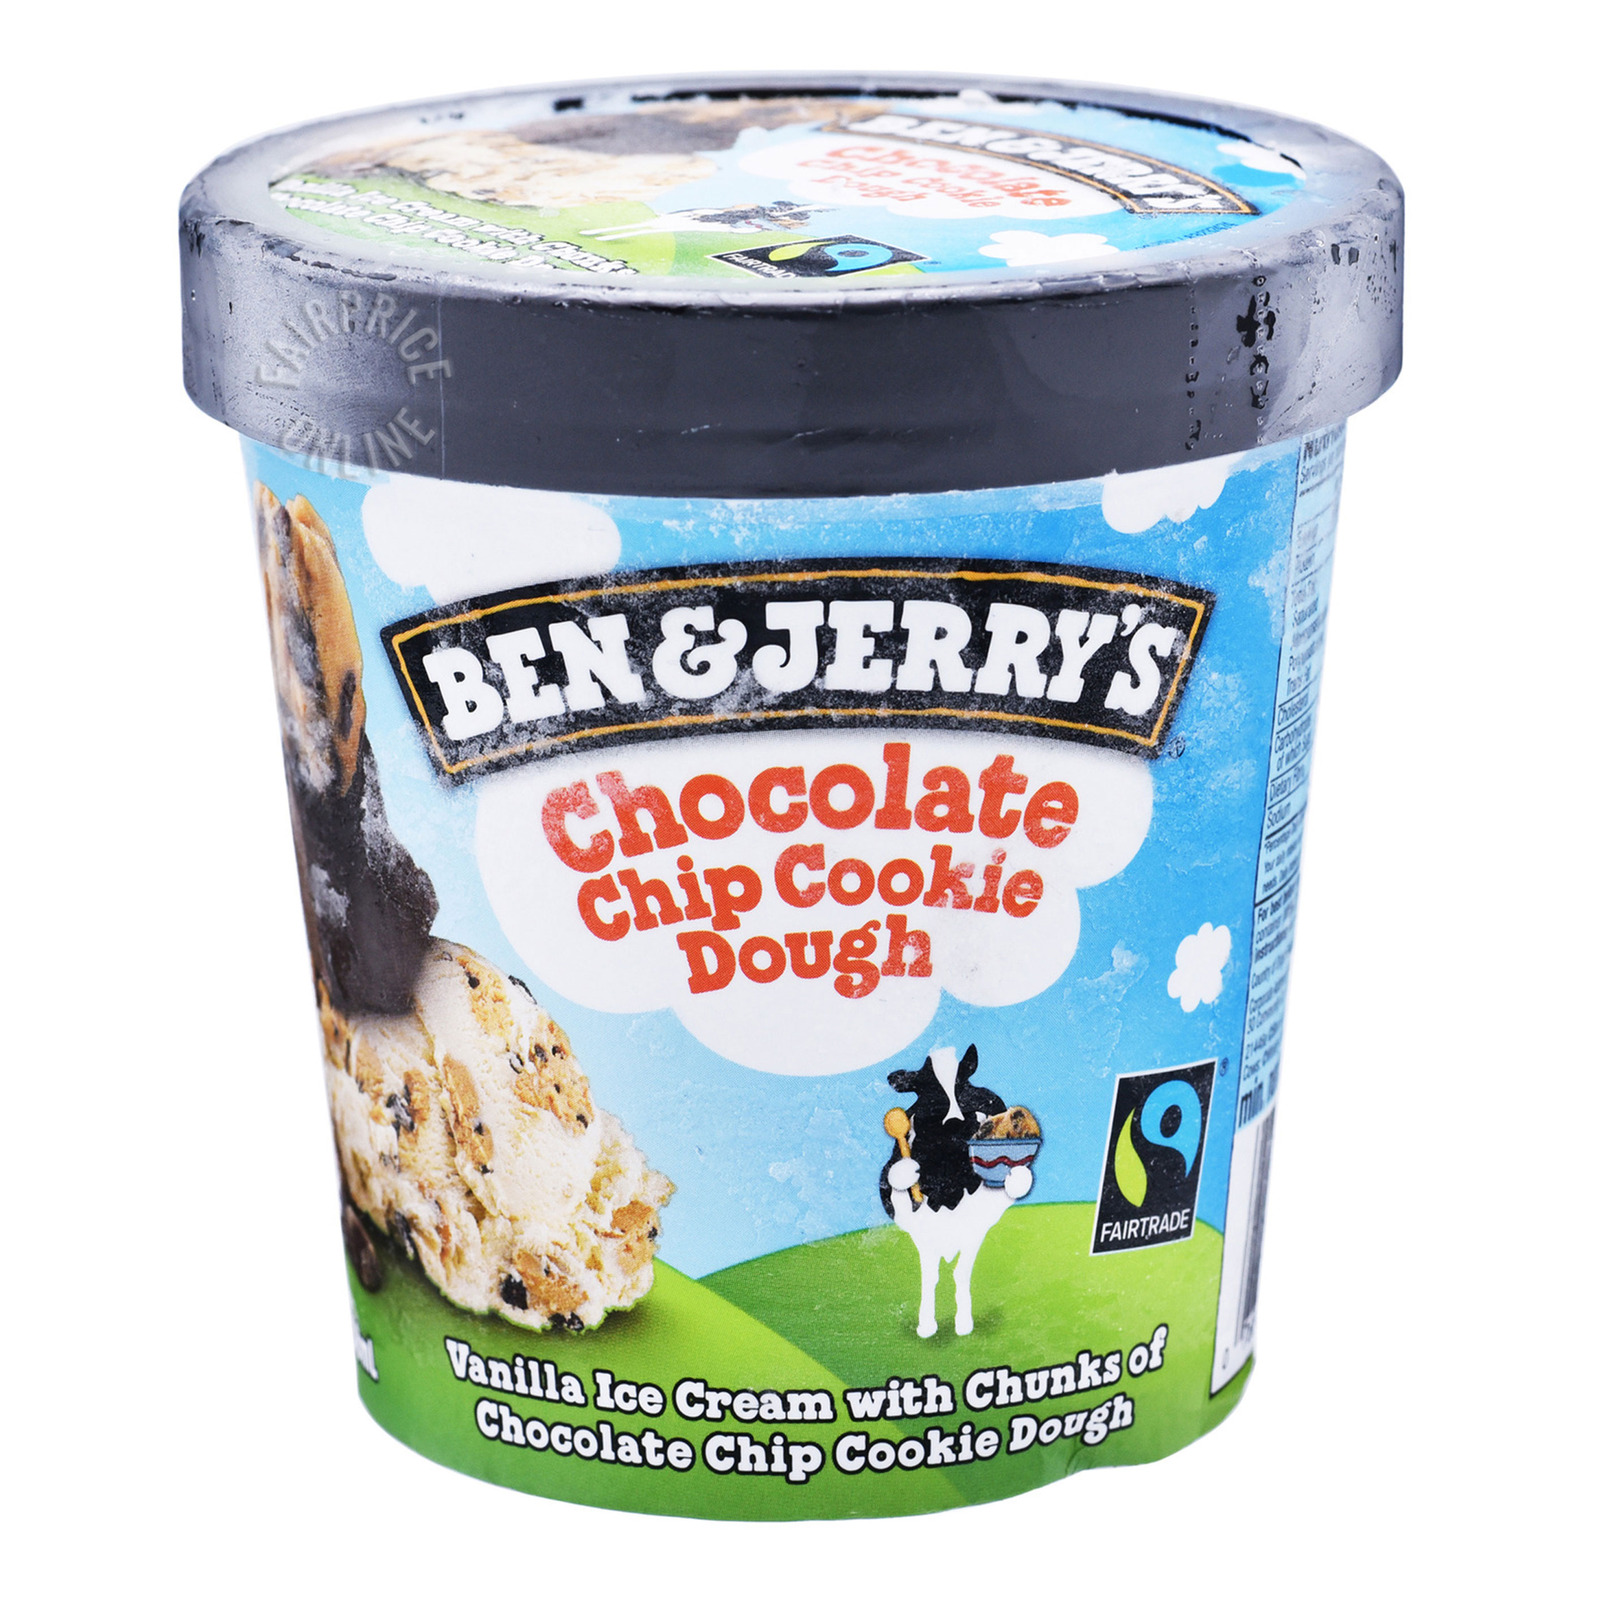 Ben & Jerry's Ice Cream - Chocolate Chip Cookie Dough